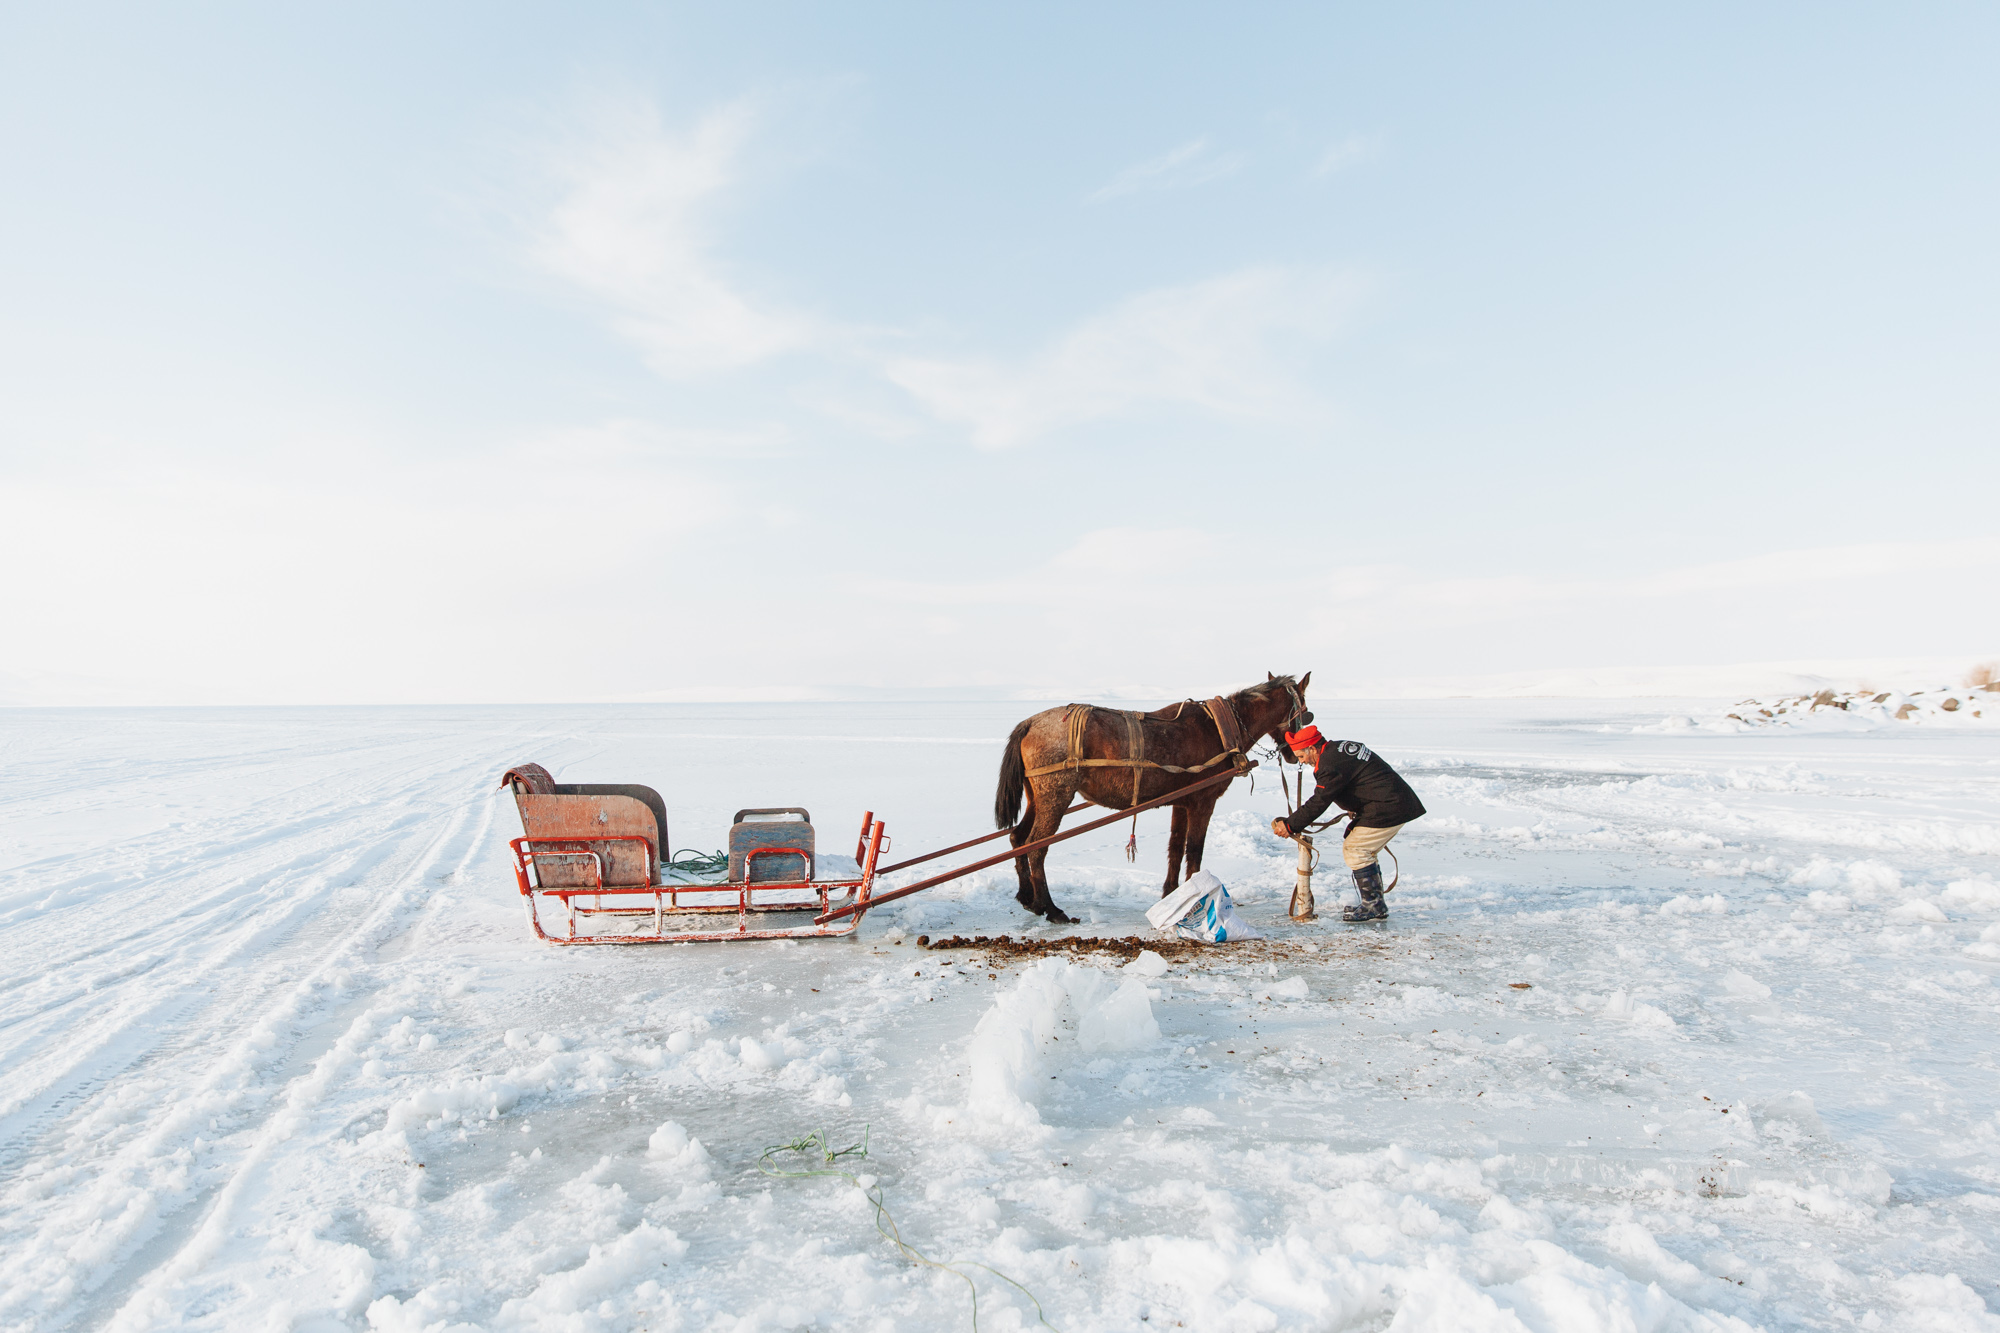 After lunch the chef took us on a nerve-wracking ride across the creaking ice.